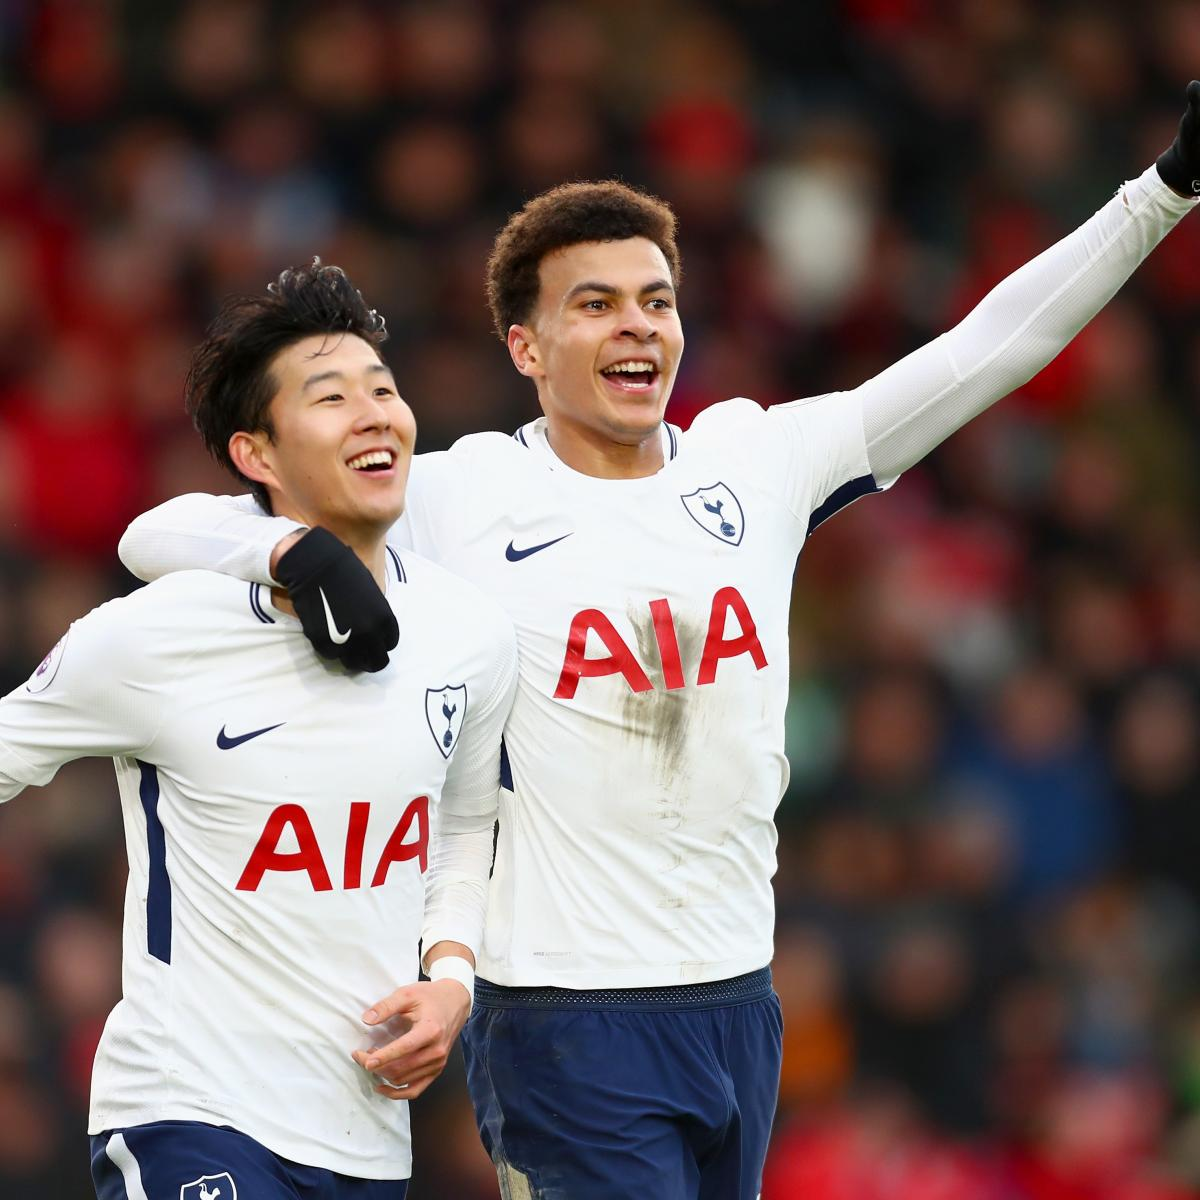 Liverpool News When Did The Premier League S Finest: Premier League Results: 2018 EPL Week 30 Scores, Table And